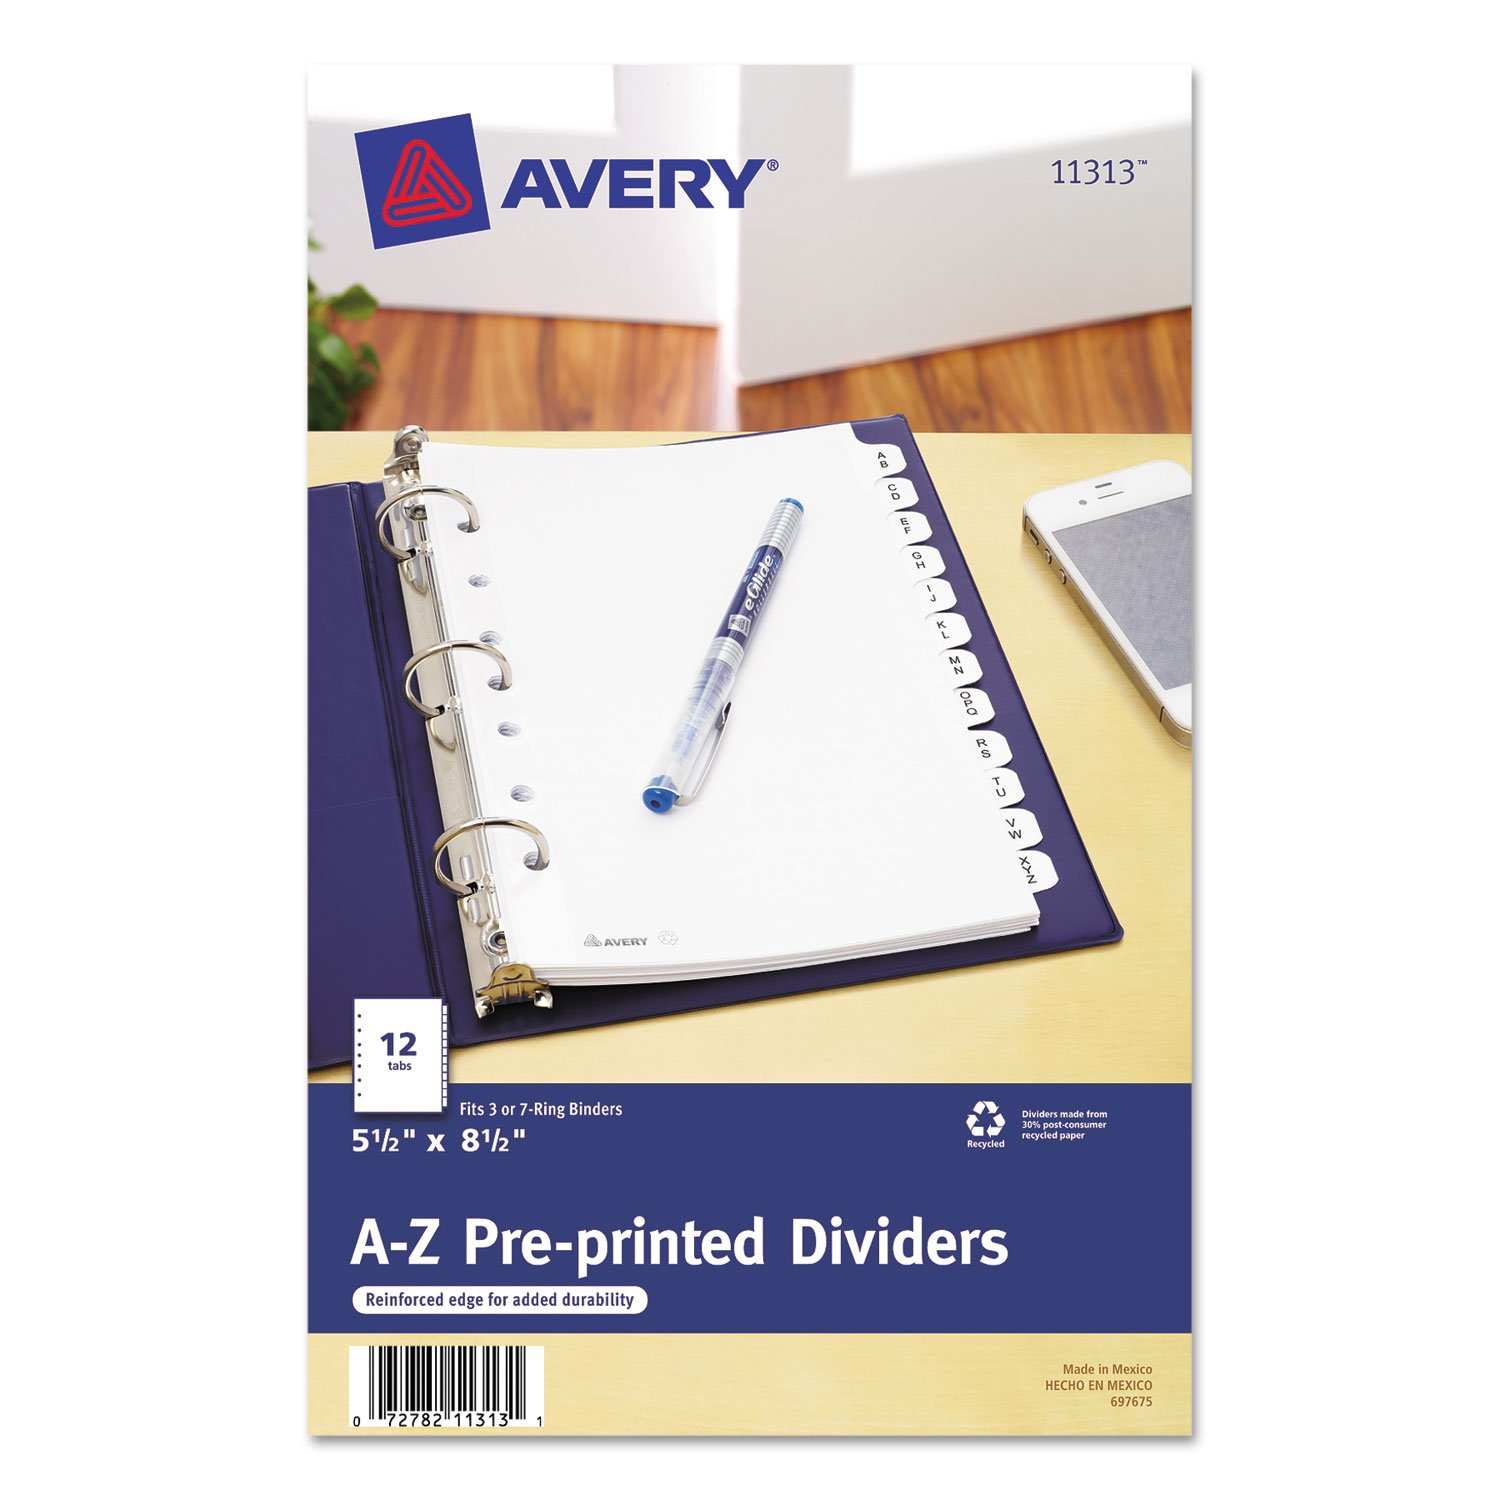 Avery 11313 Pre-Printed Dividers, w/7 Holes, 12-Tabs, A-Z, 8-1/2x5-1/2, WE 8-1/2x5-1/2 AVE11313